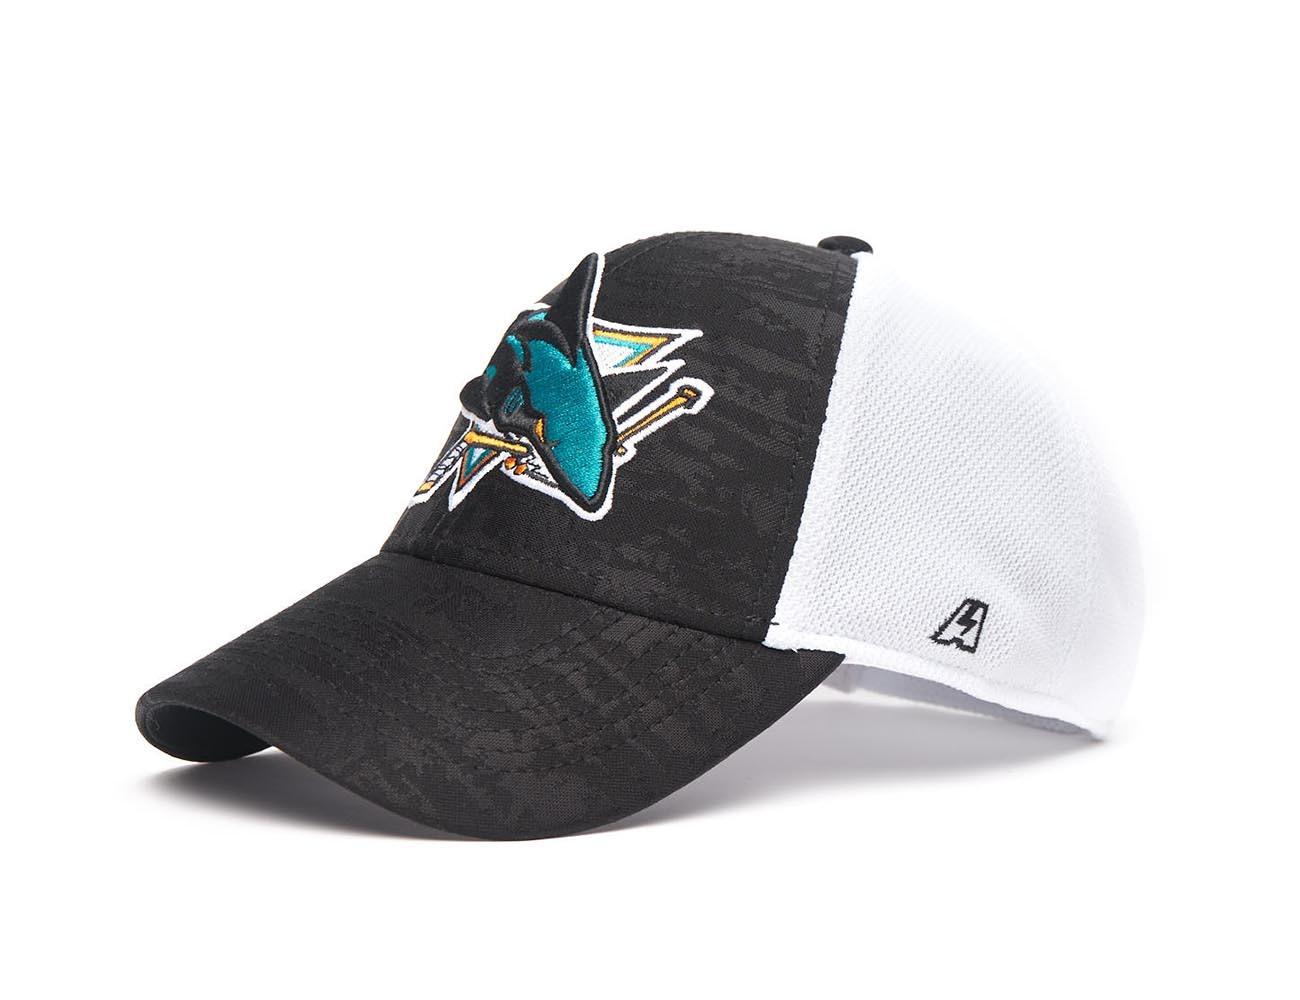 Бейсболка NHL San Jose Sharks (размер S)